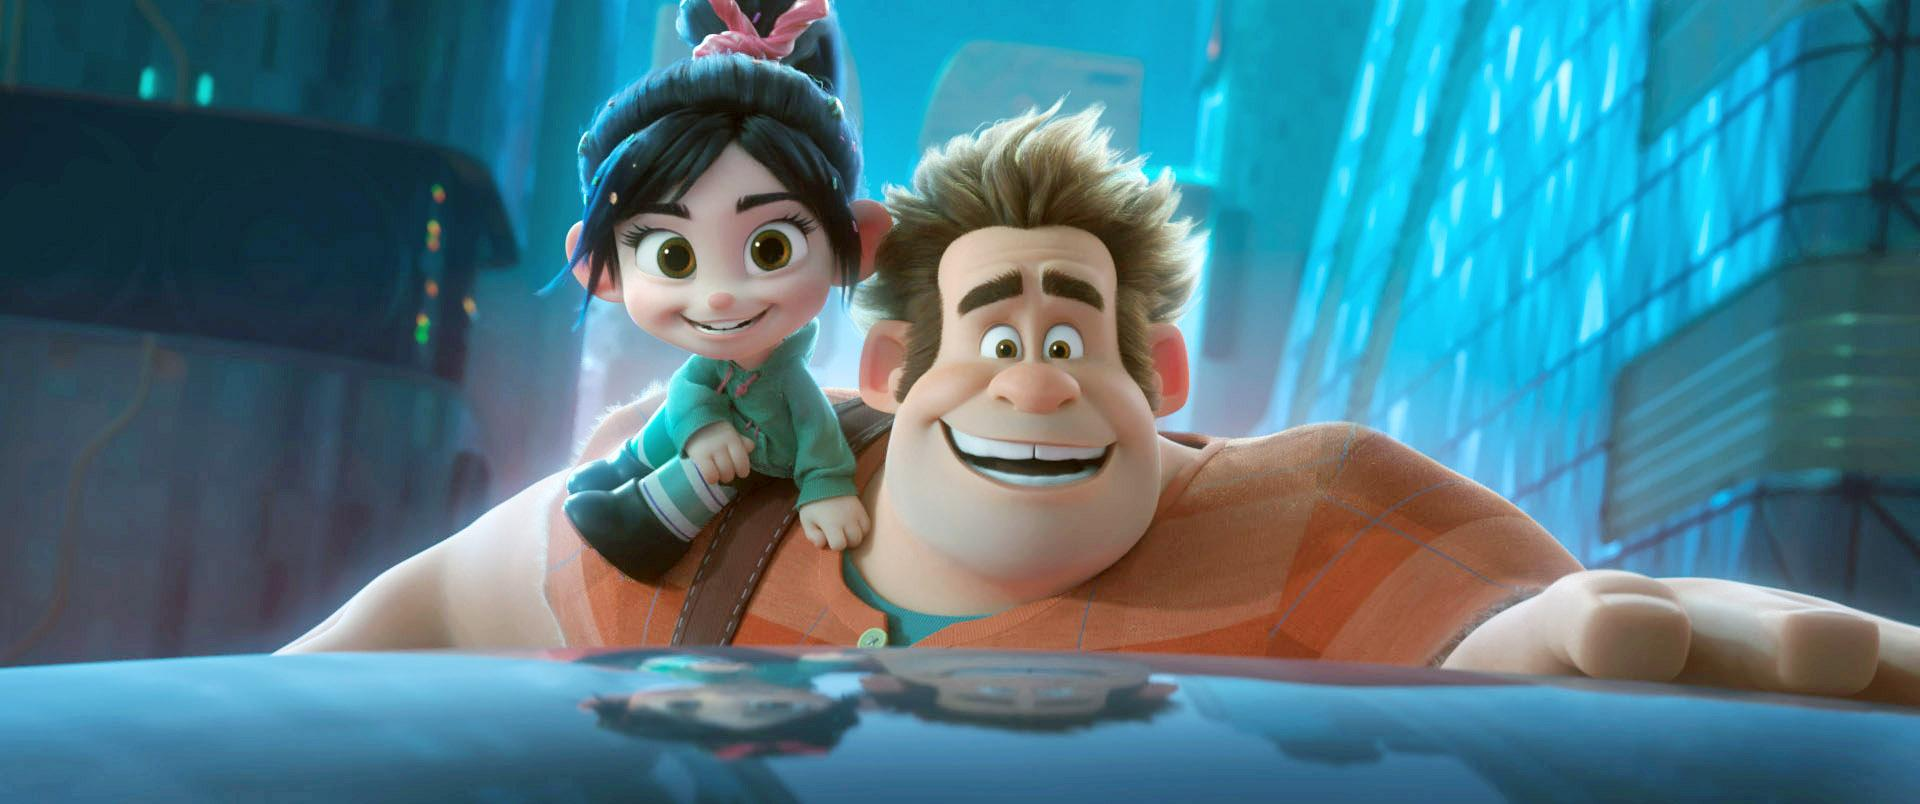 Exclusive look at 'Ralph Breaks the Internet' Easter eggs, including Disney deep cuts you missed